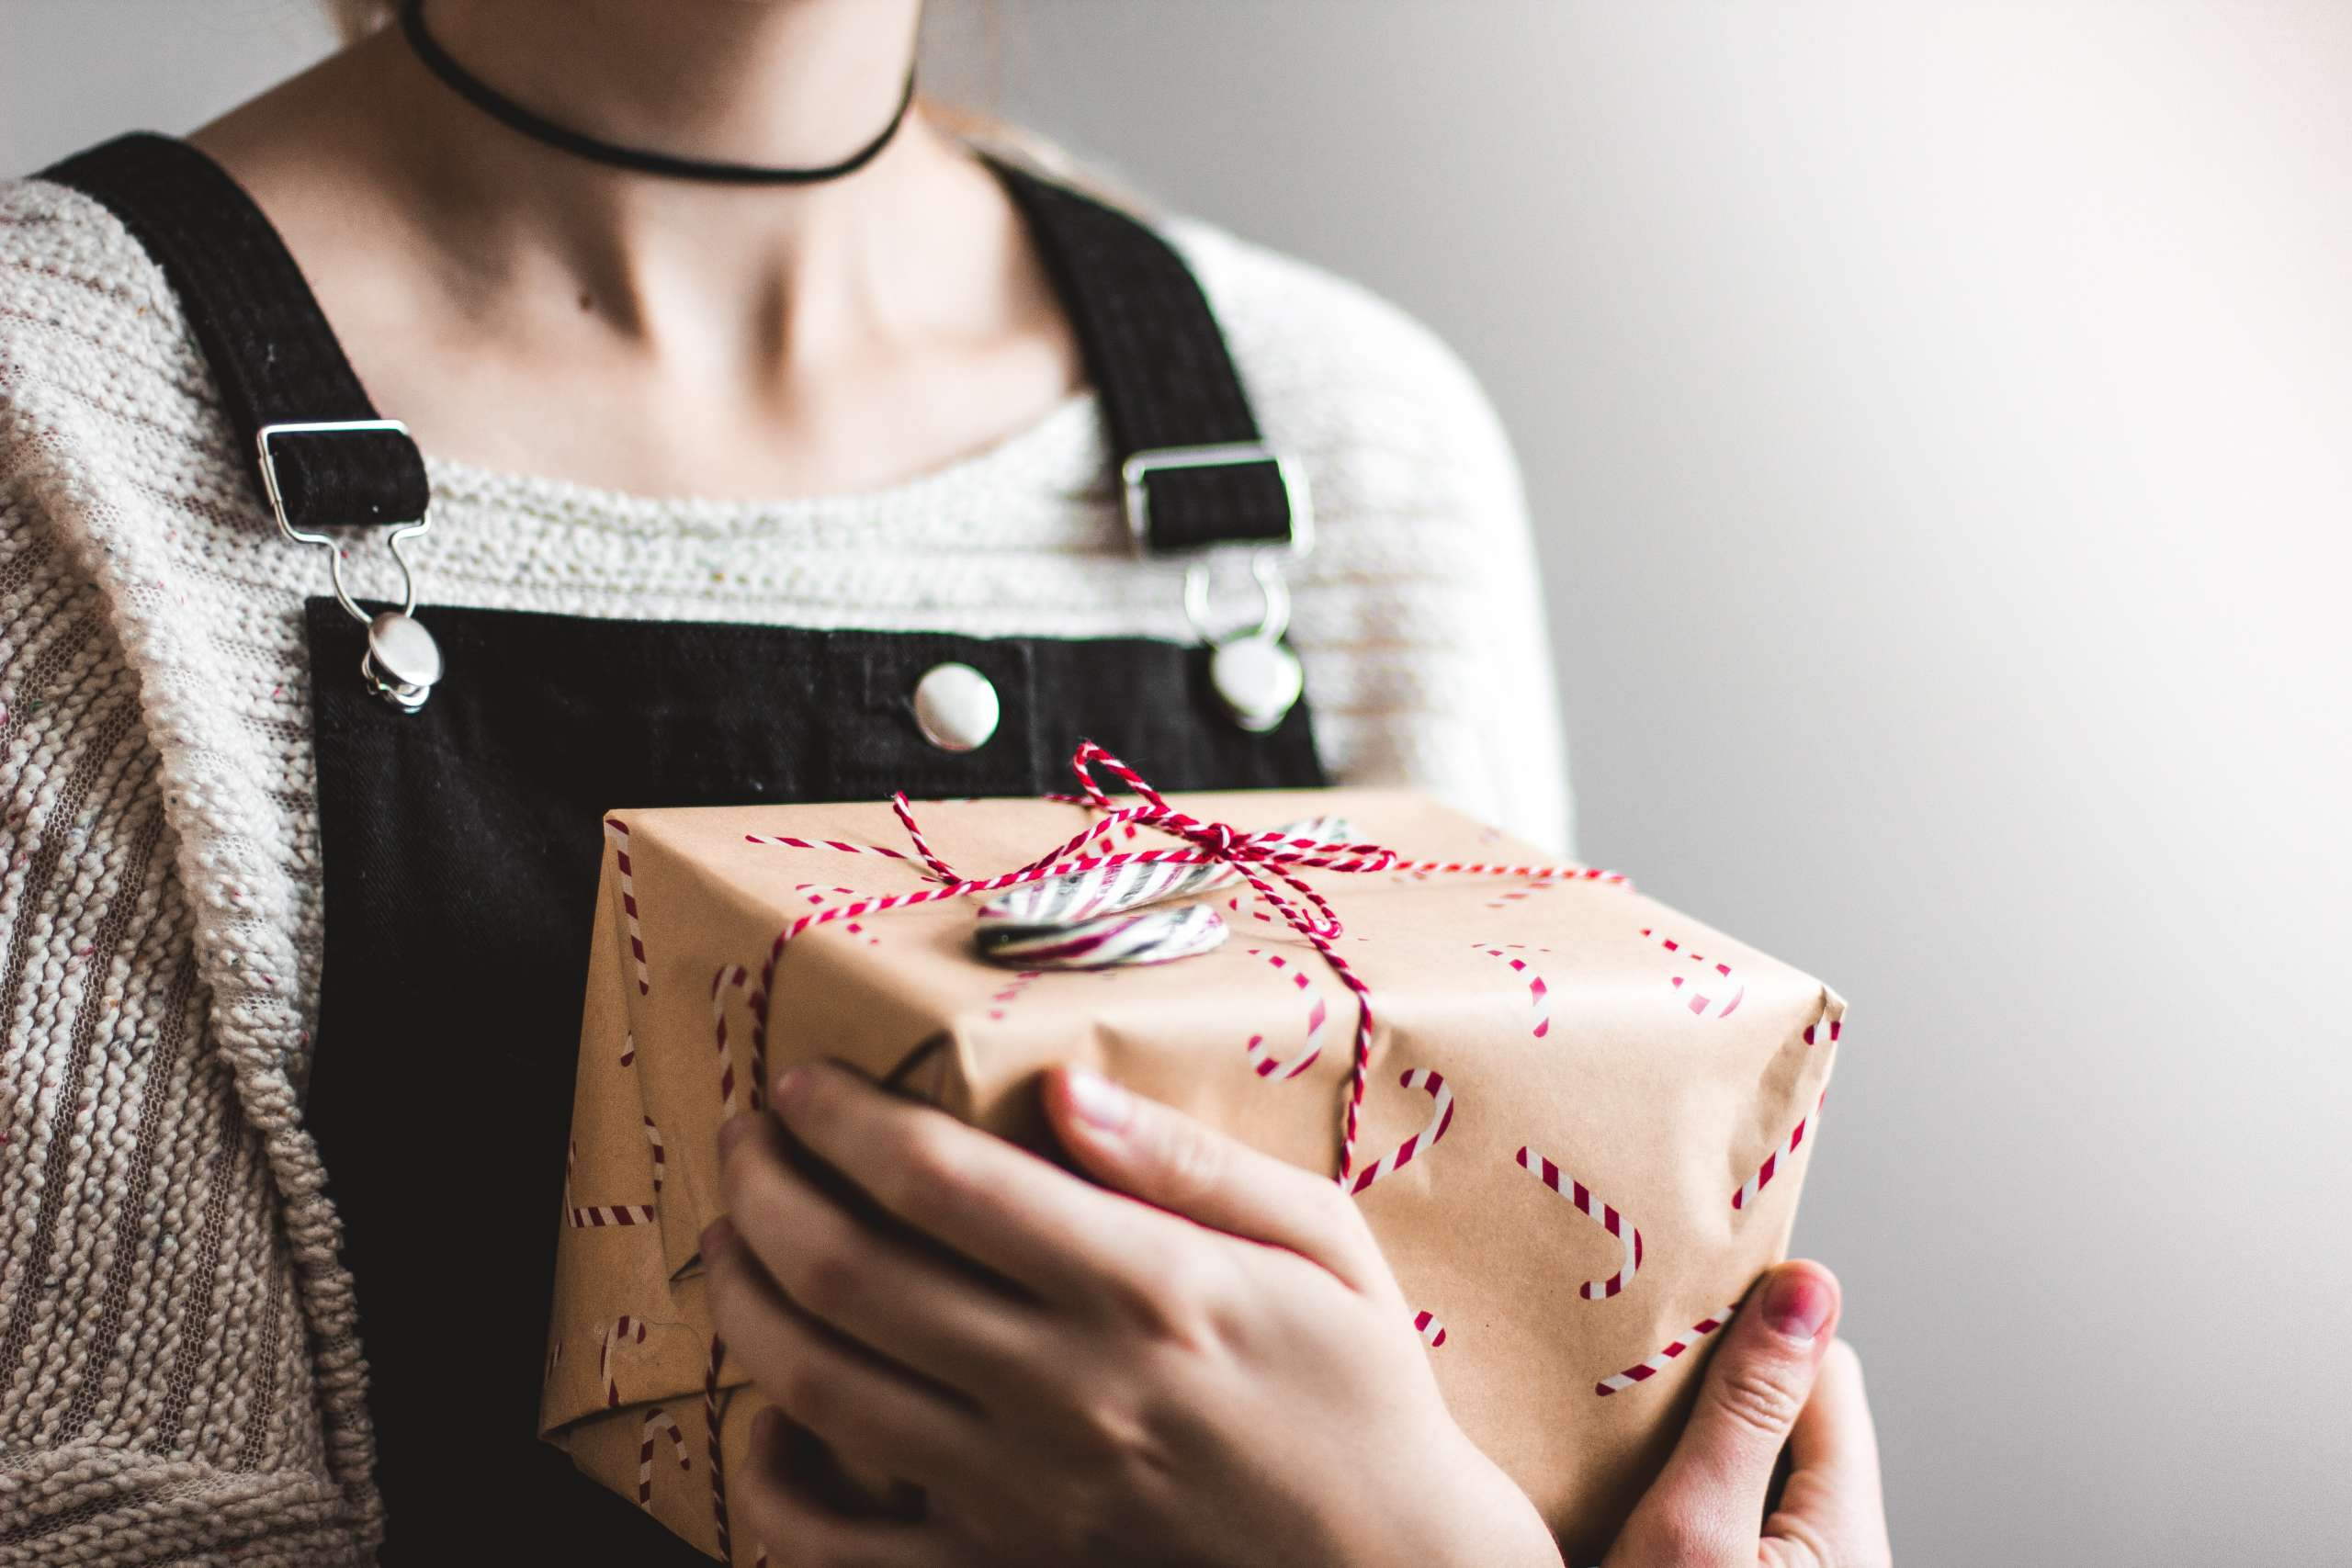 10 Thoughtful Care Package Ideas Guaranteed to Make Your Friend Smile - Society19